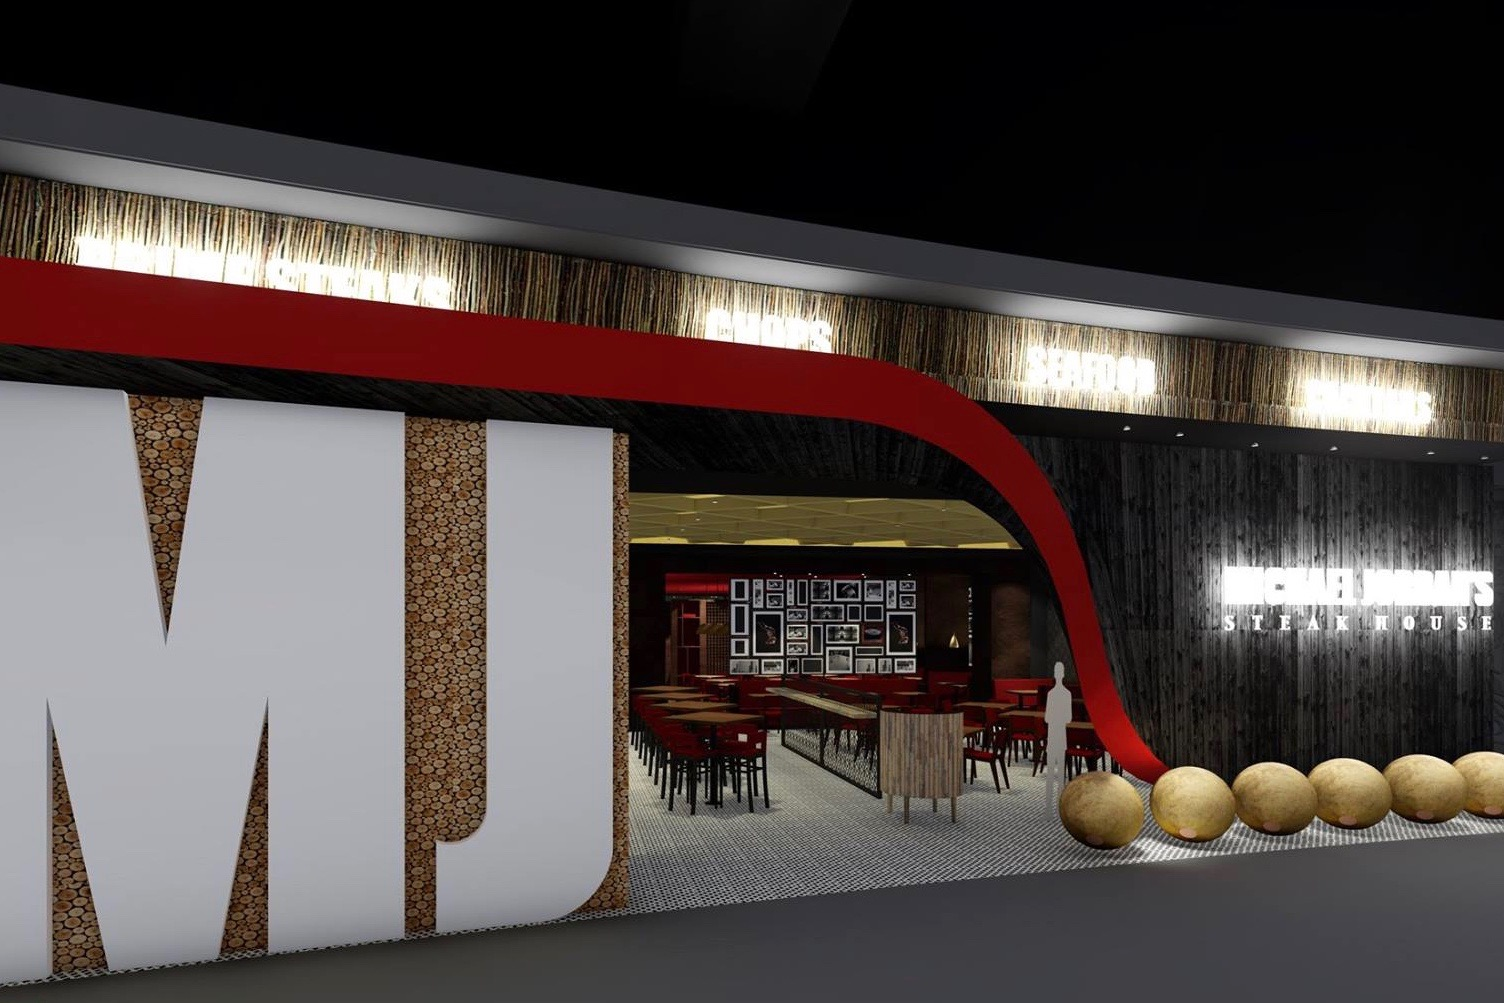 Cowlitz Tribe brings Michael Jordan's Steakhouse to new casino